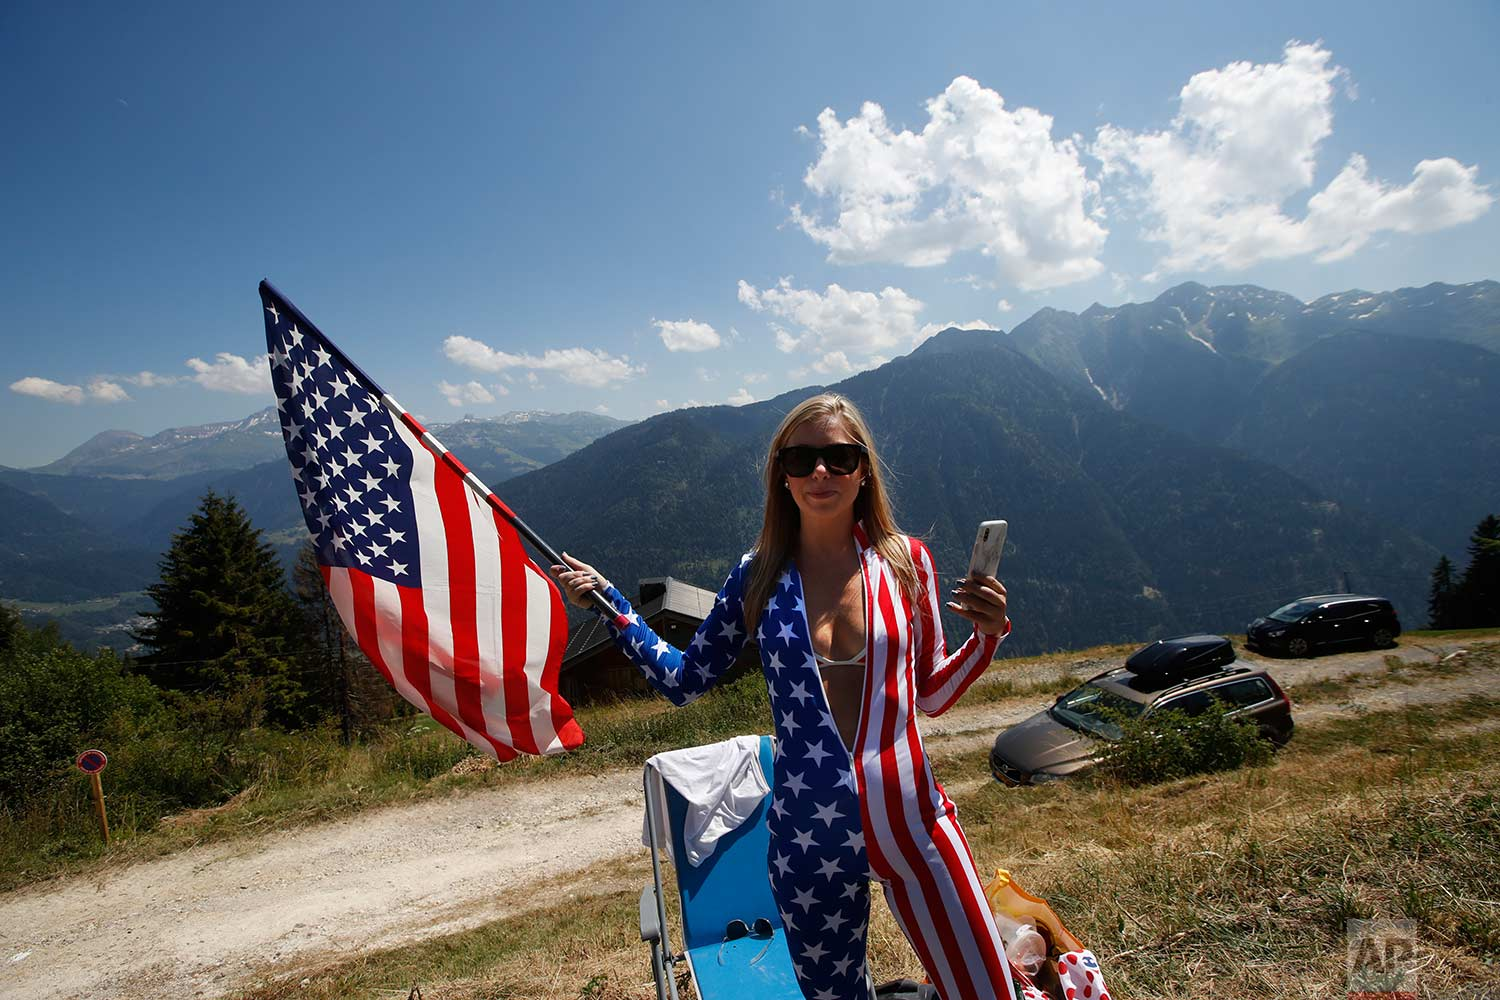 A cycling fan waits on the side of the road for riders to pass during the eleventh stage of the Tour de France cycling race over 108.5 kilometers (67.4 miles) with start in Albertville and finish in La Rosiere Espace San Bernardo, France. (AP Photo/Christophe Ena )